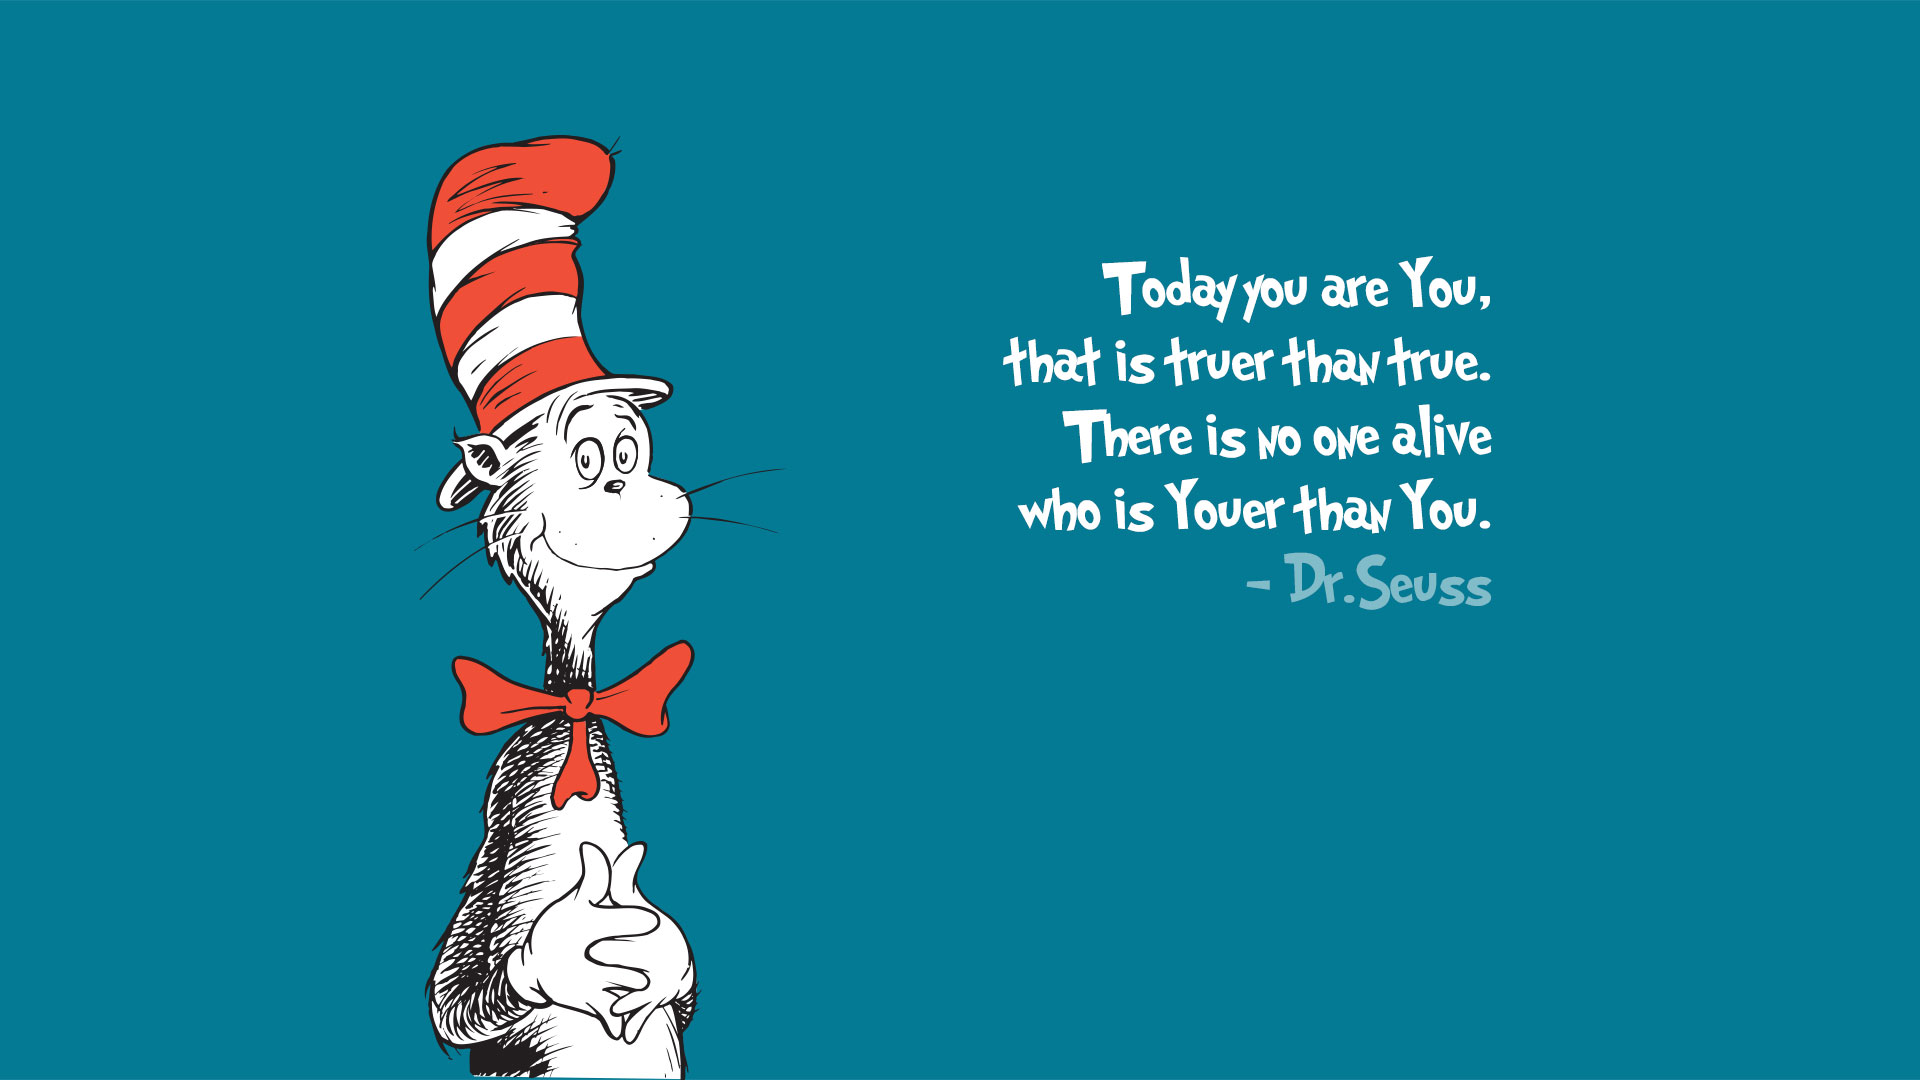 Today you are you   Dr Seuss xpost on rwallpapers [1920x1080] [OC 1920x1080